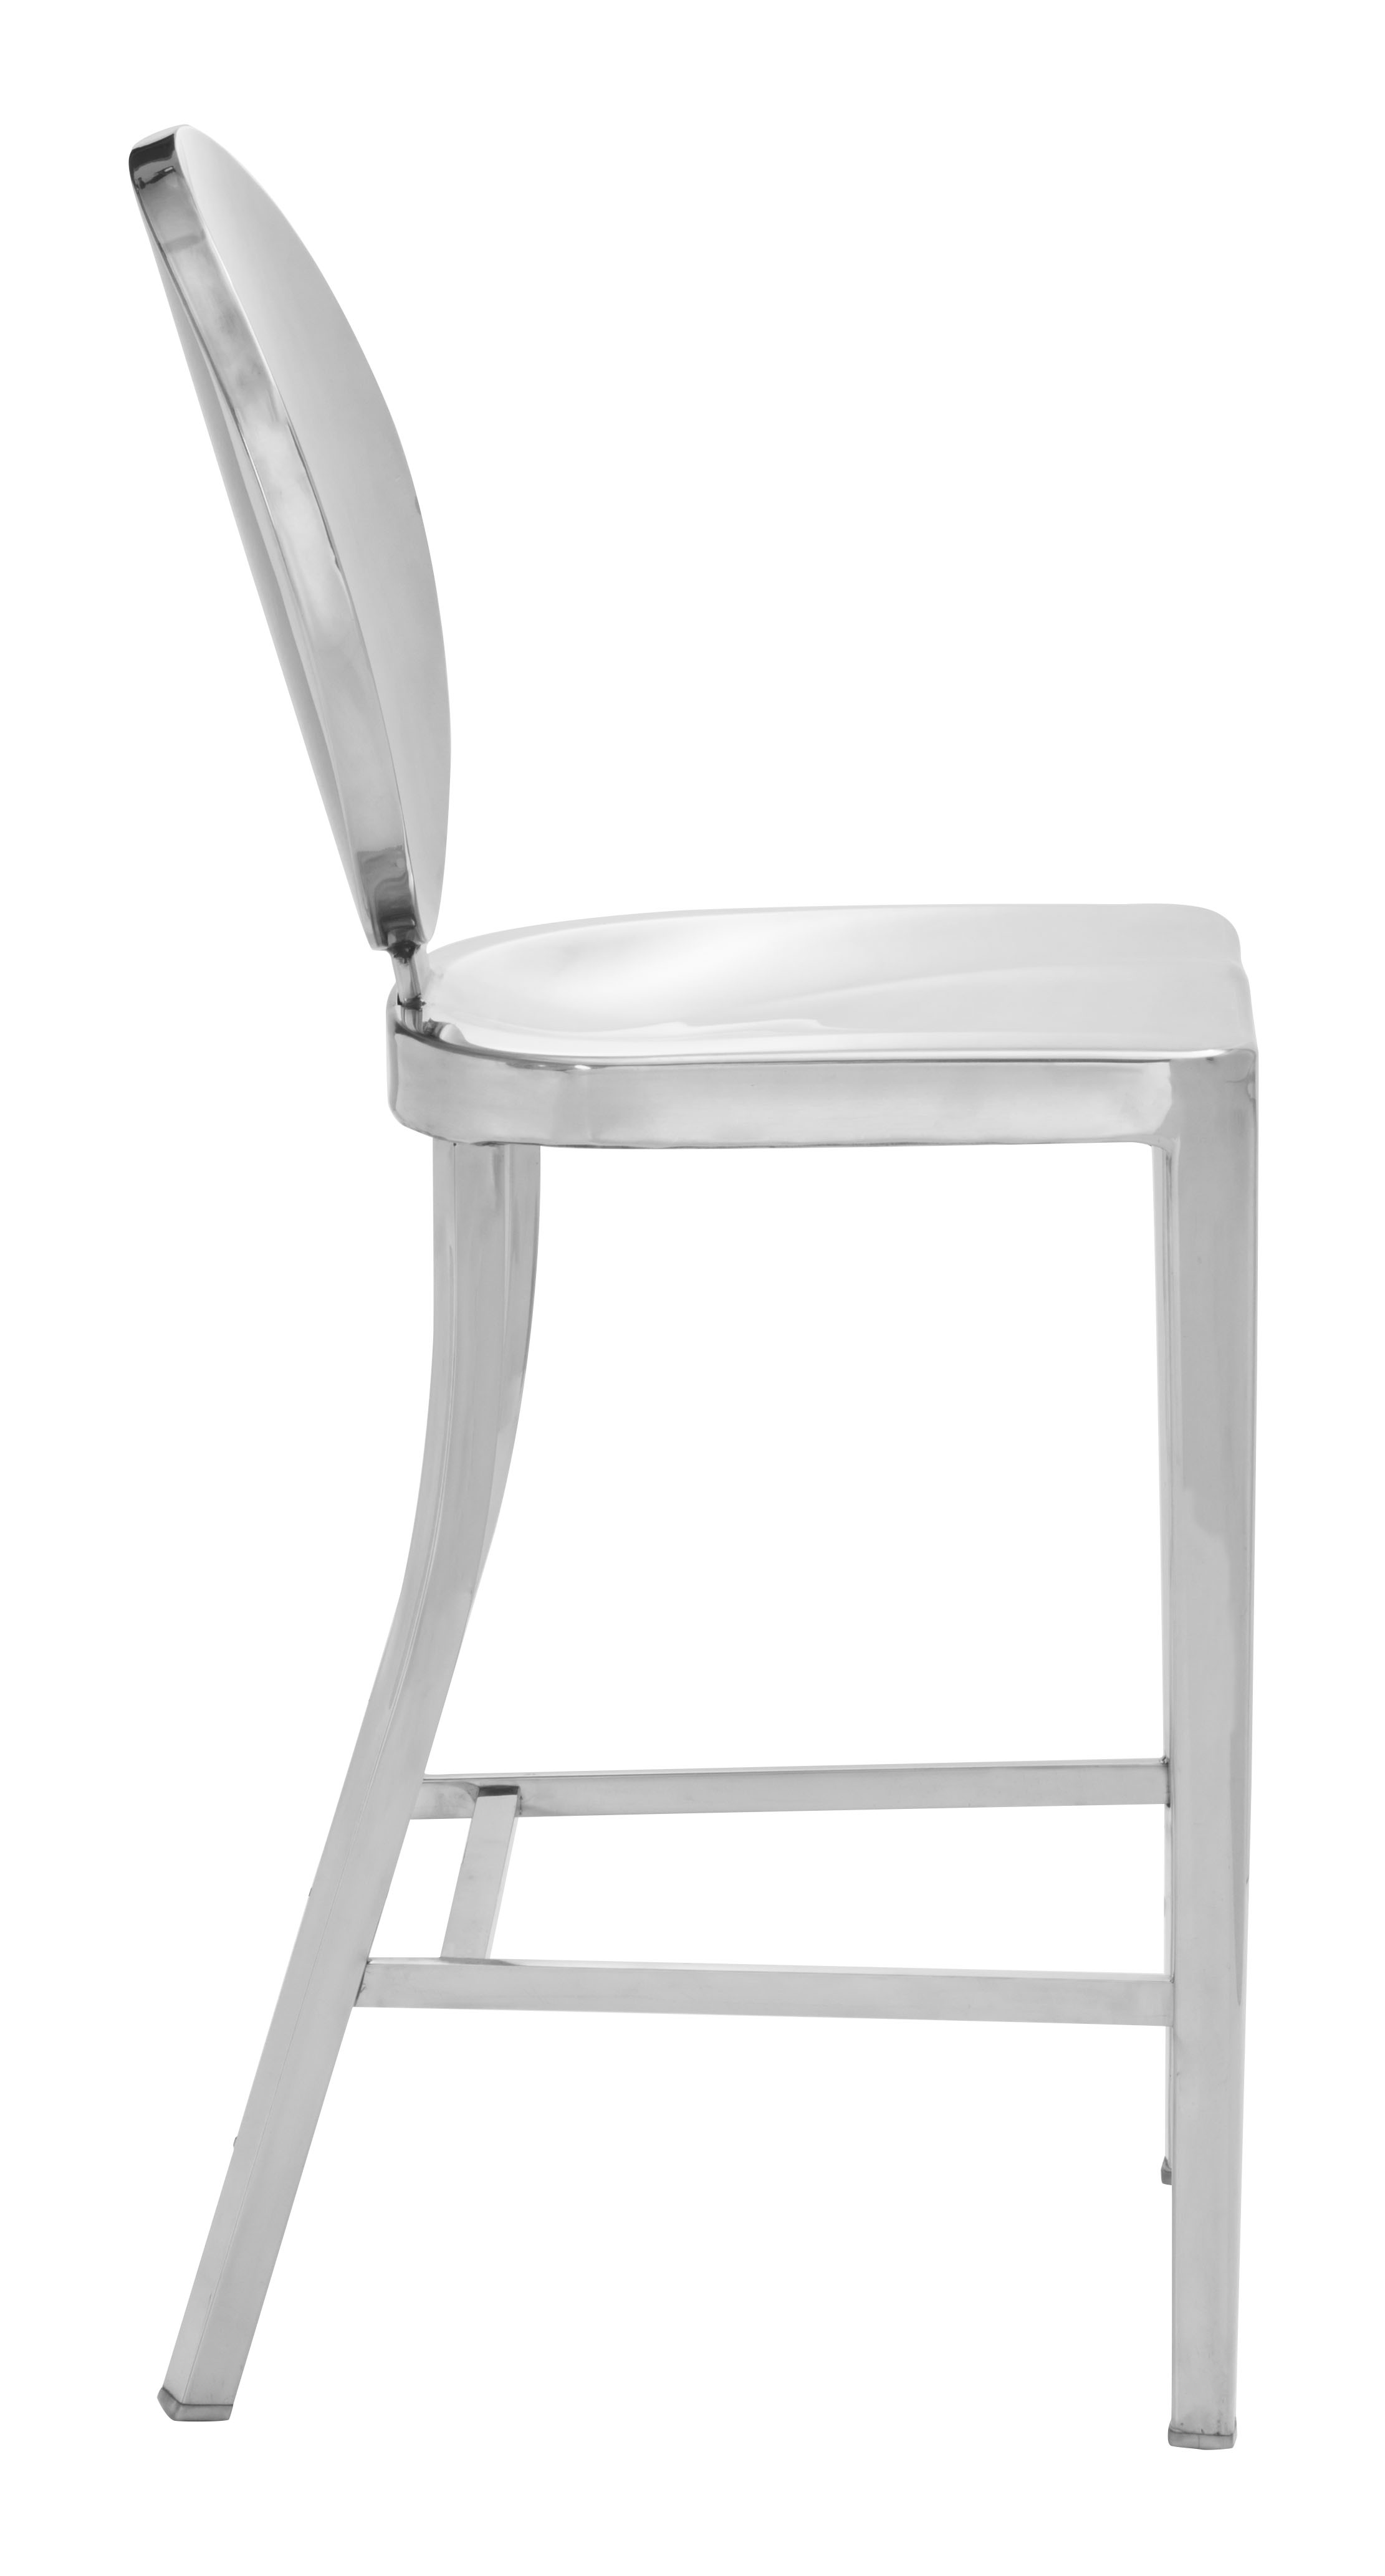 steel chair price in patna adirondack rocking chairs resin zuo autumn counter 24 quot stainless best